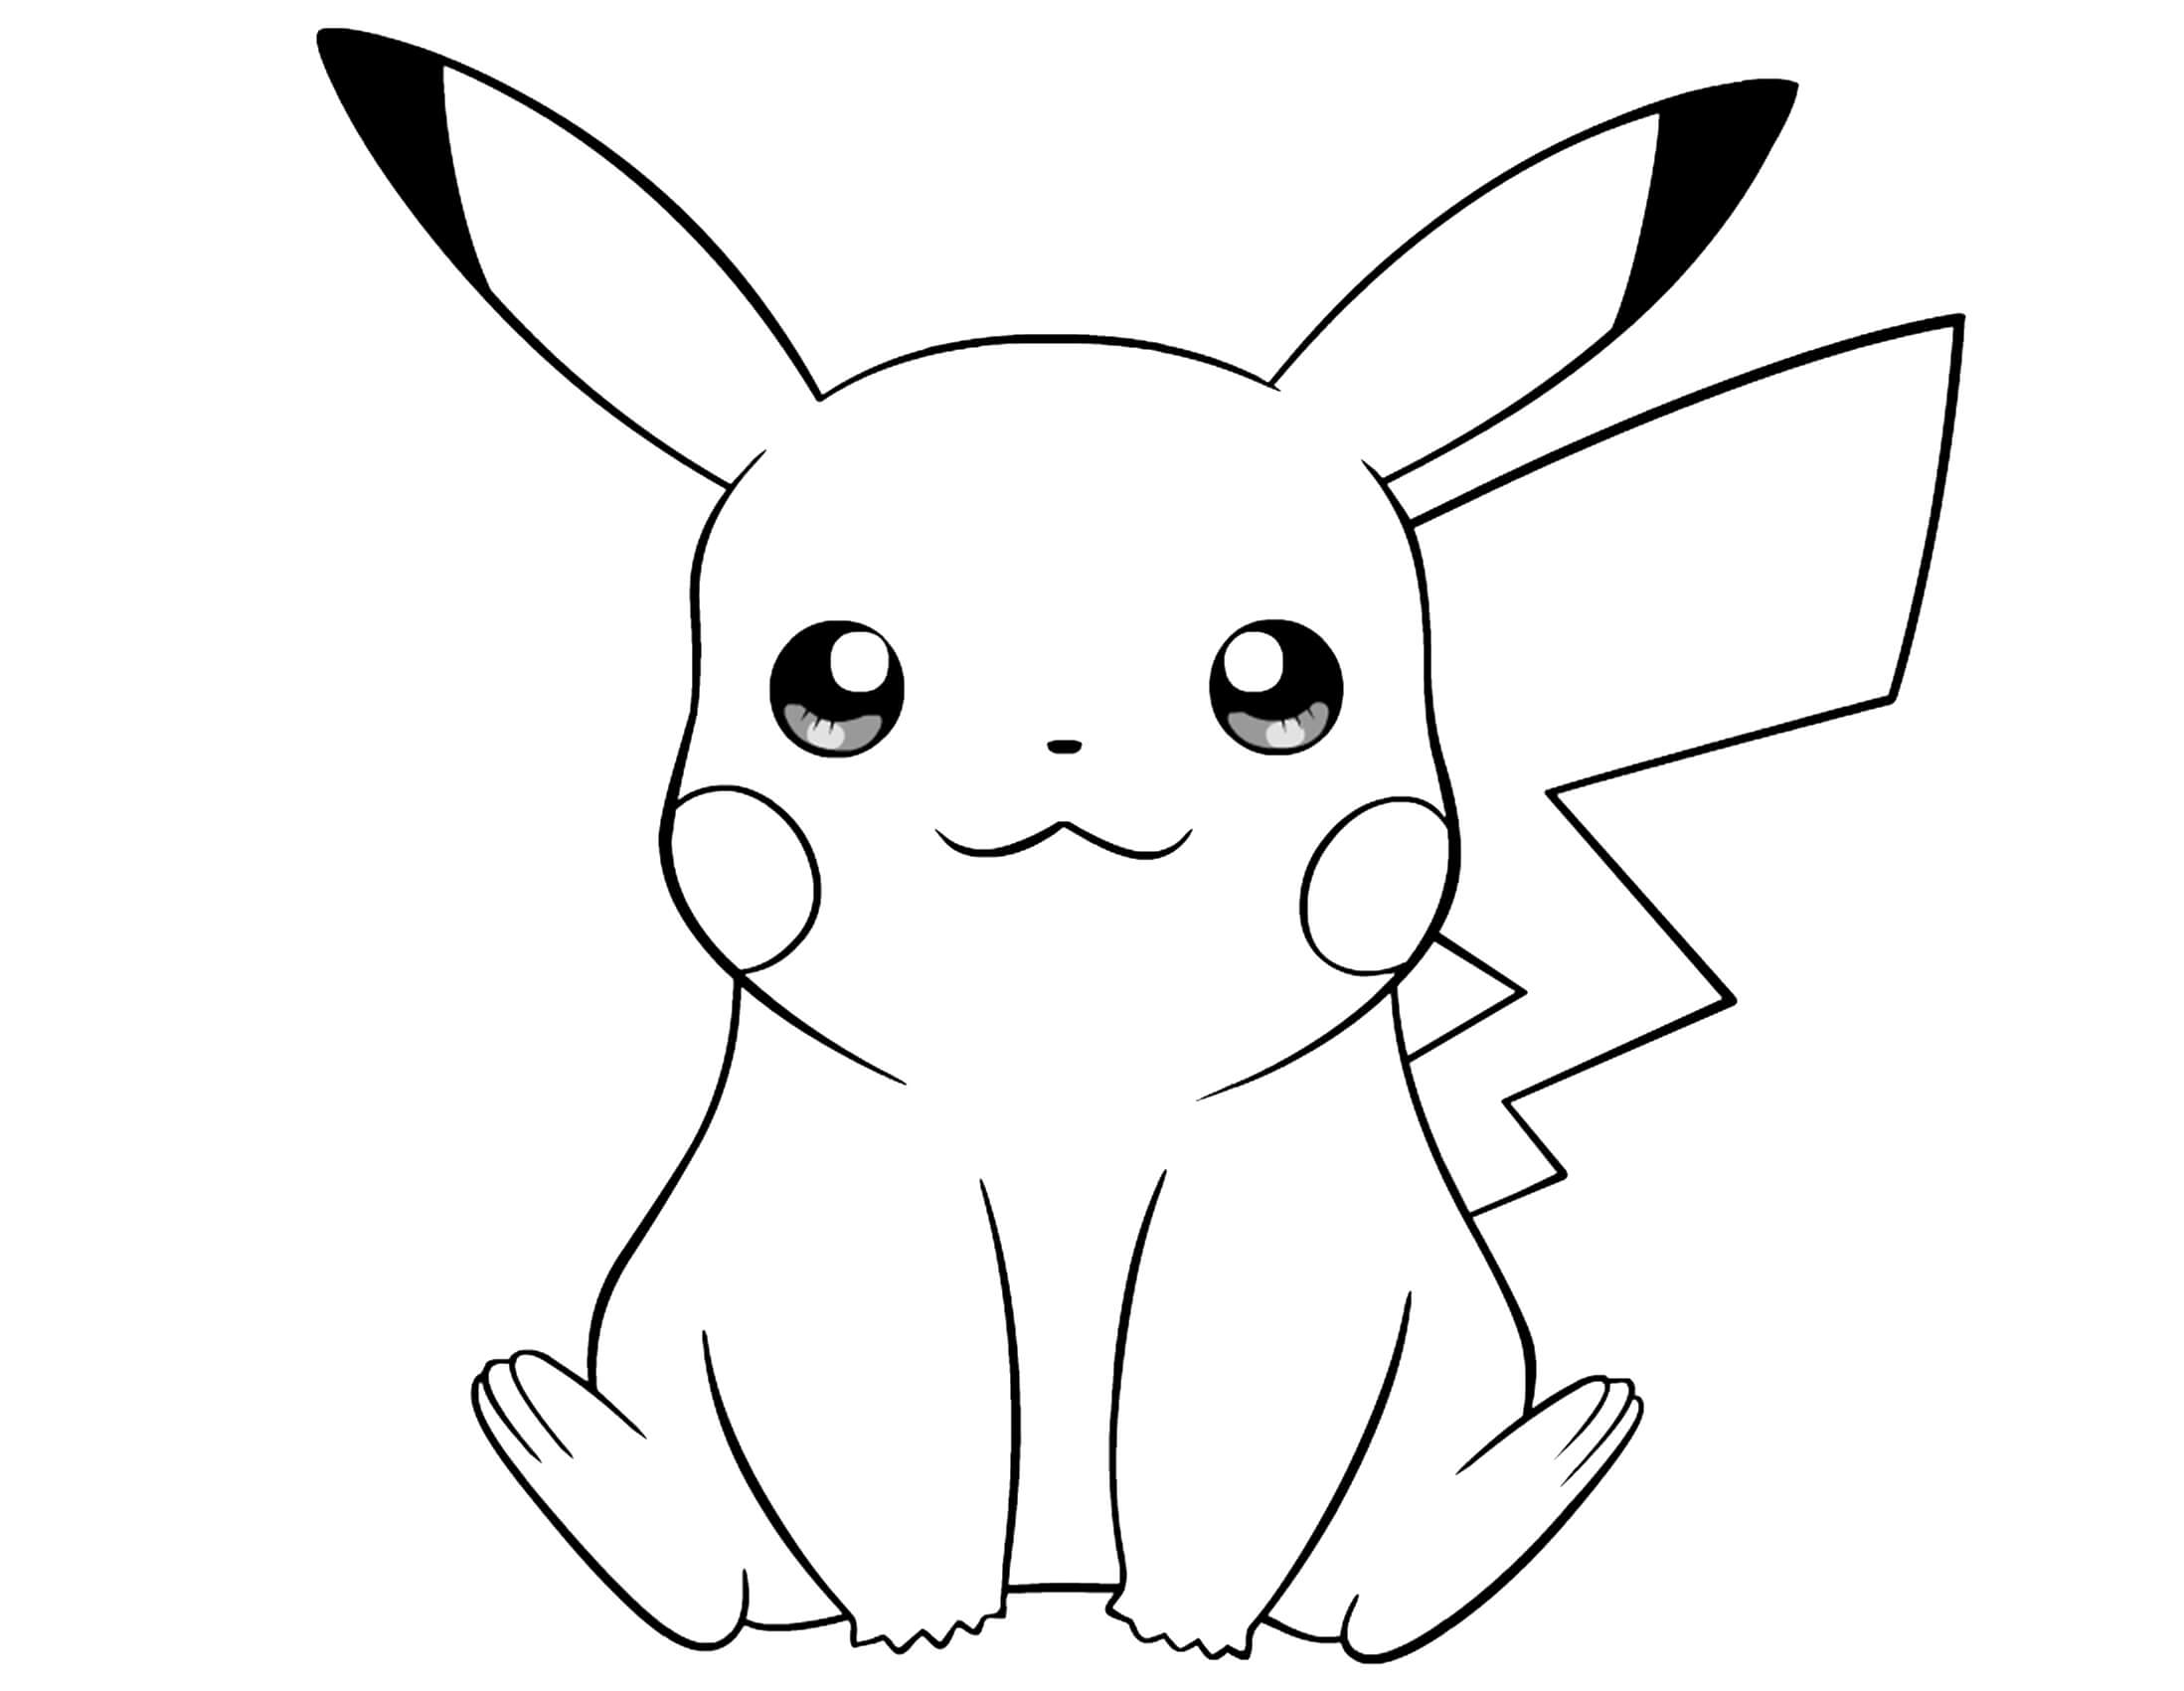 free pikachu printables pikachu coloring pages to download and print for free free printables pikachu